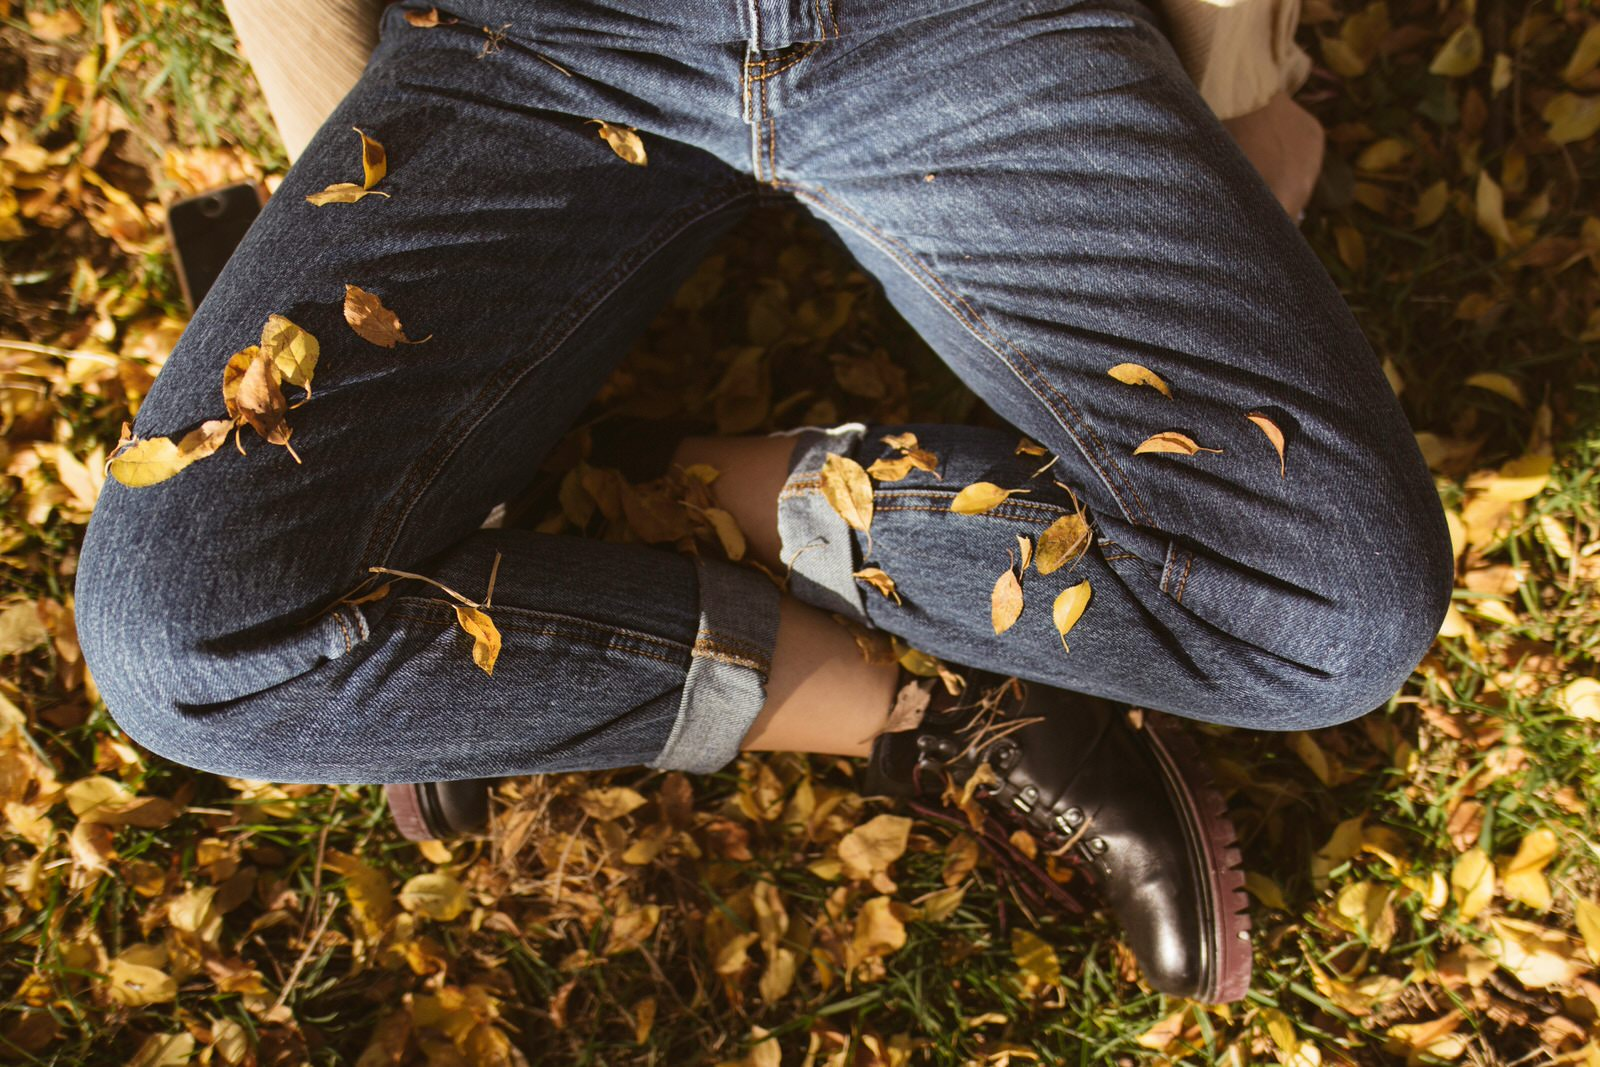 A person meditating with crossed legs, sitting in the yellow leaves on a ground